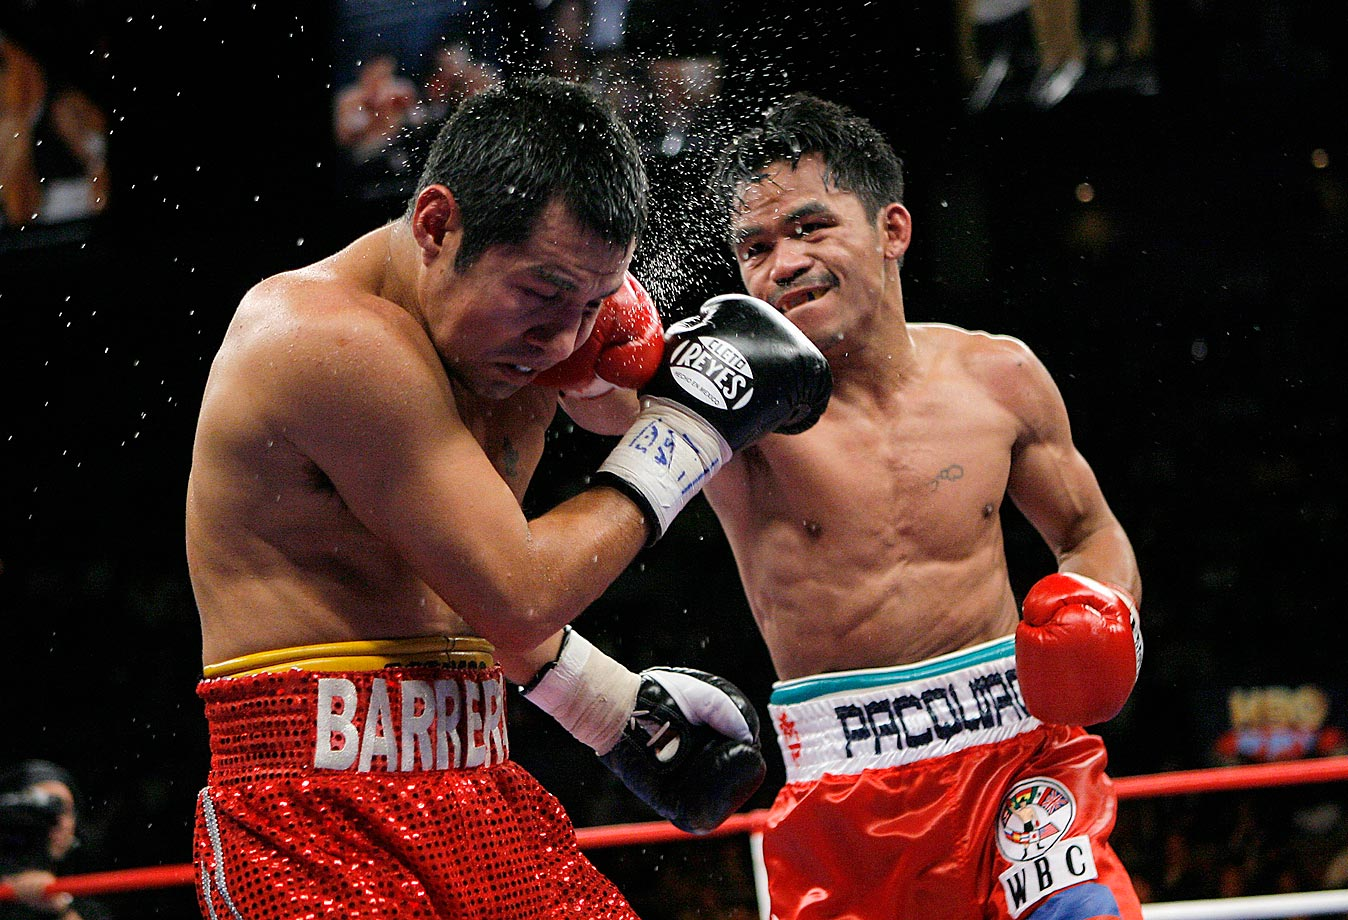 In the long-awaited rematch with Barrera at super featherweight, Pacquaio won a lopsided unanimous decision at the Mandalay Bay in Las Vegas.